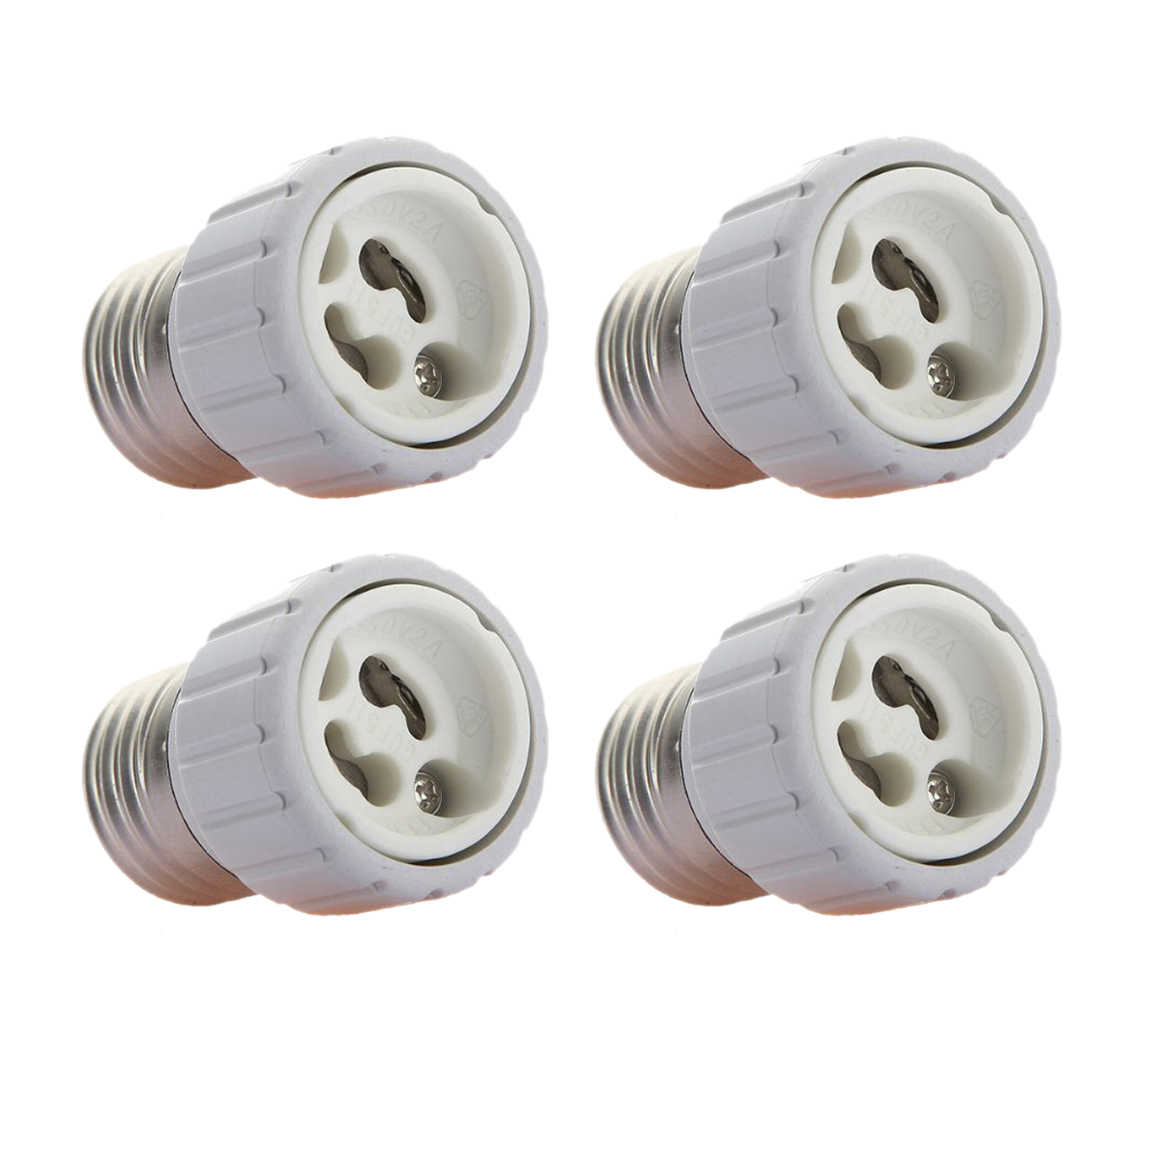 JFBL Hot 4x E27 to GU10 LED light socket adapter socket adapter lamp bulb Converter White